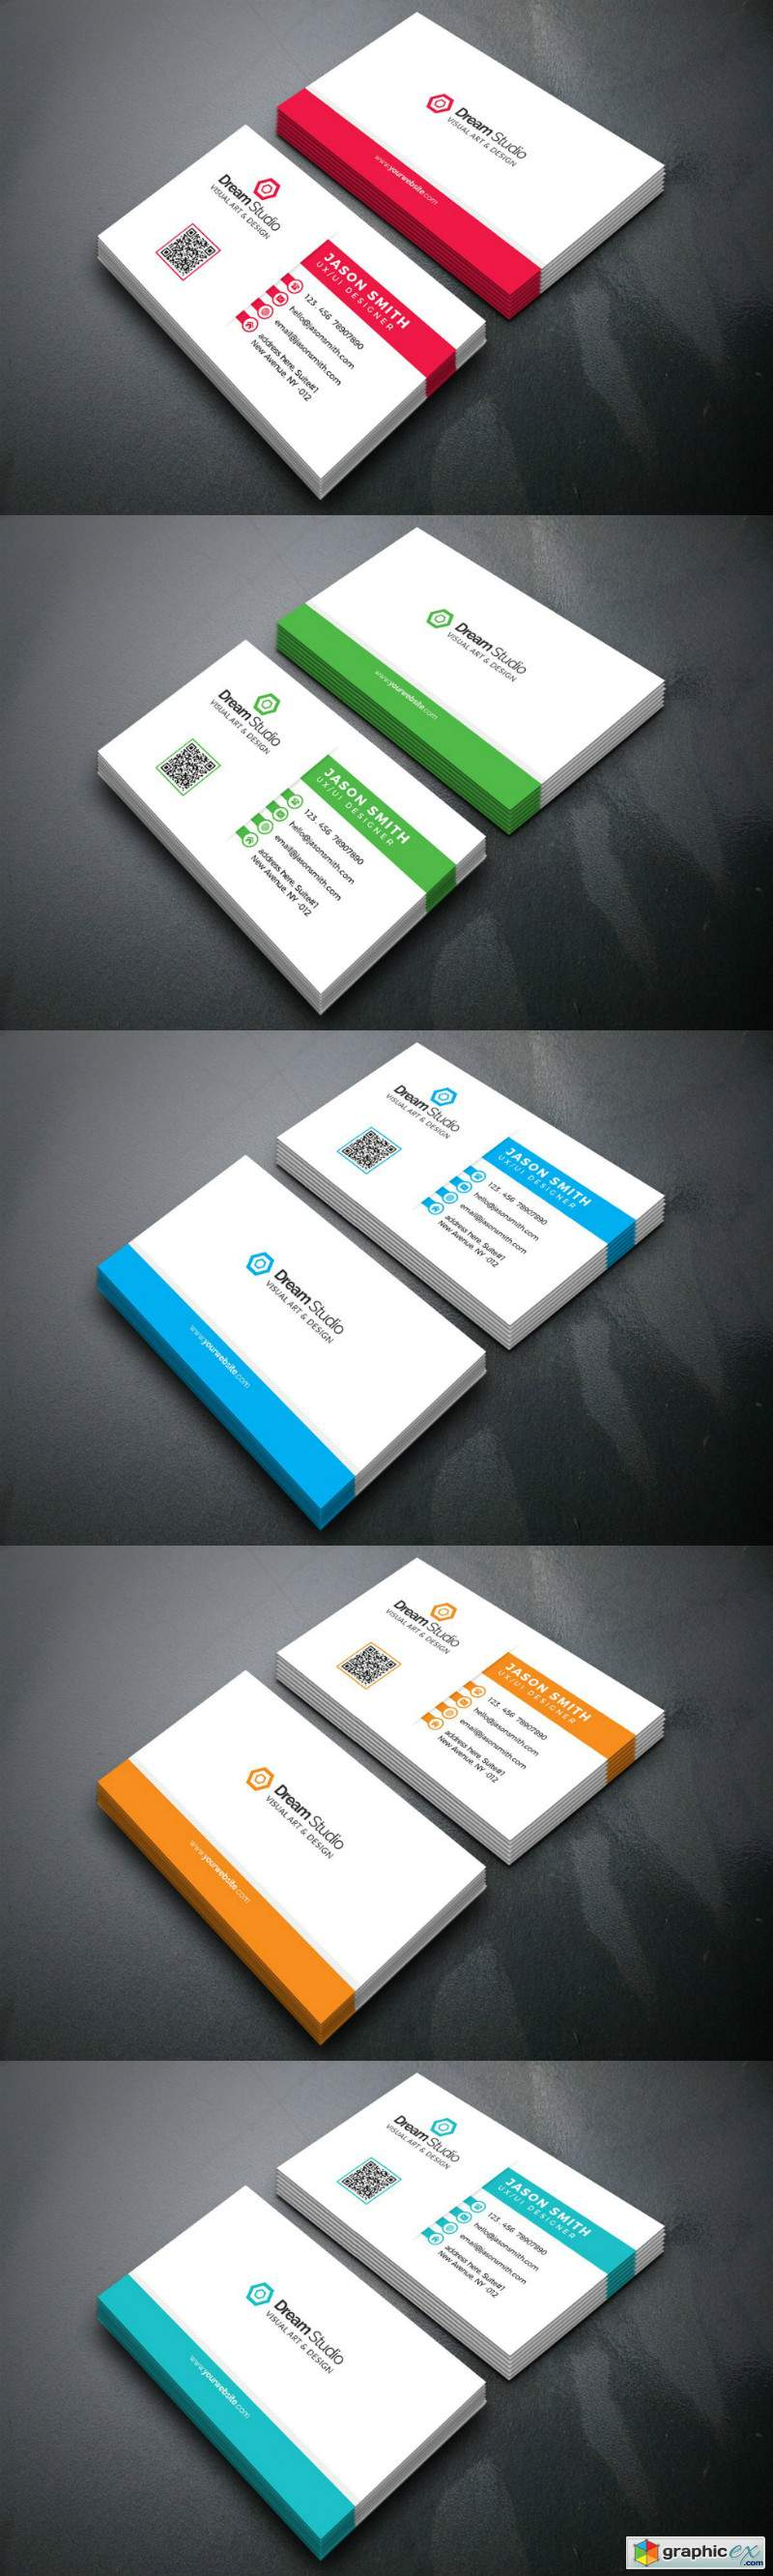 BUSINESS CARDS 3084368